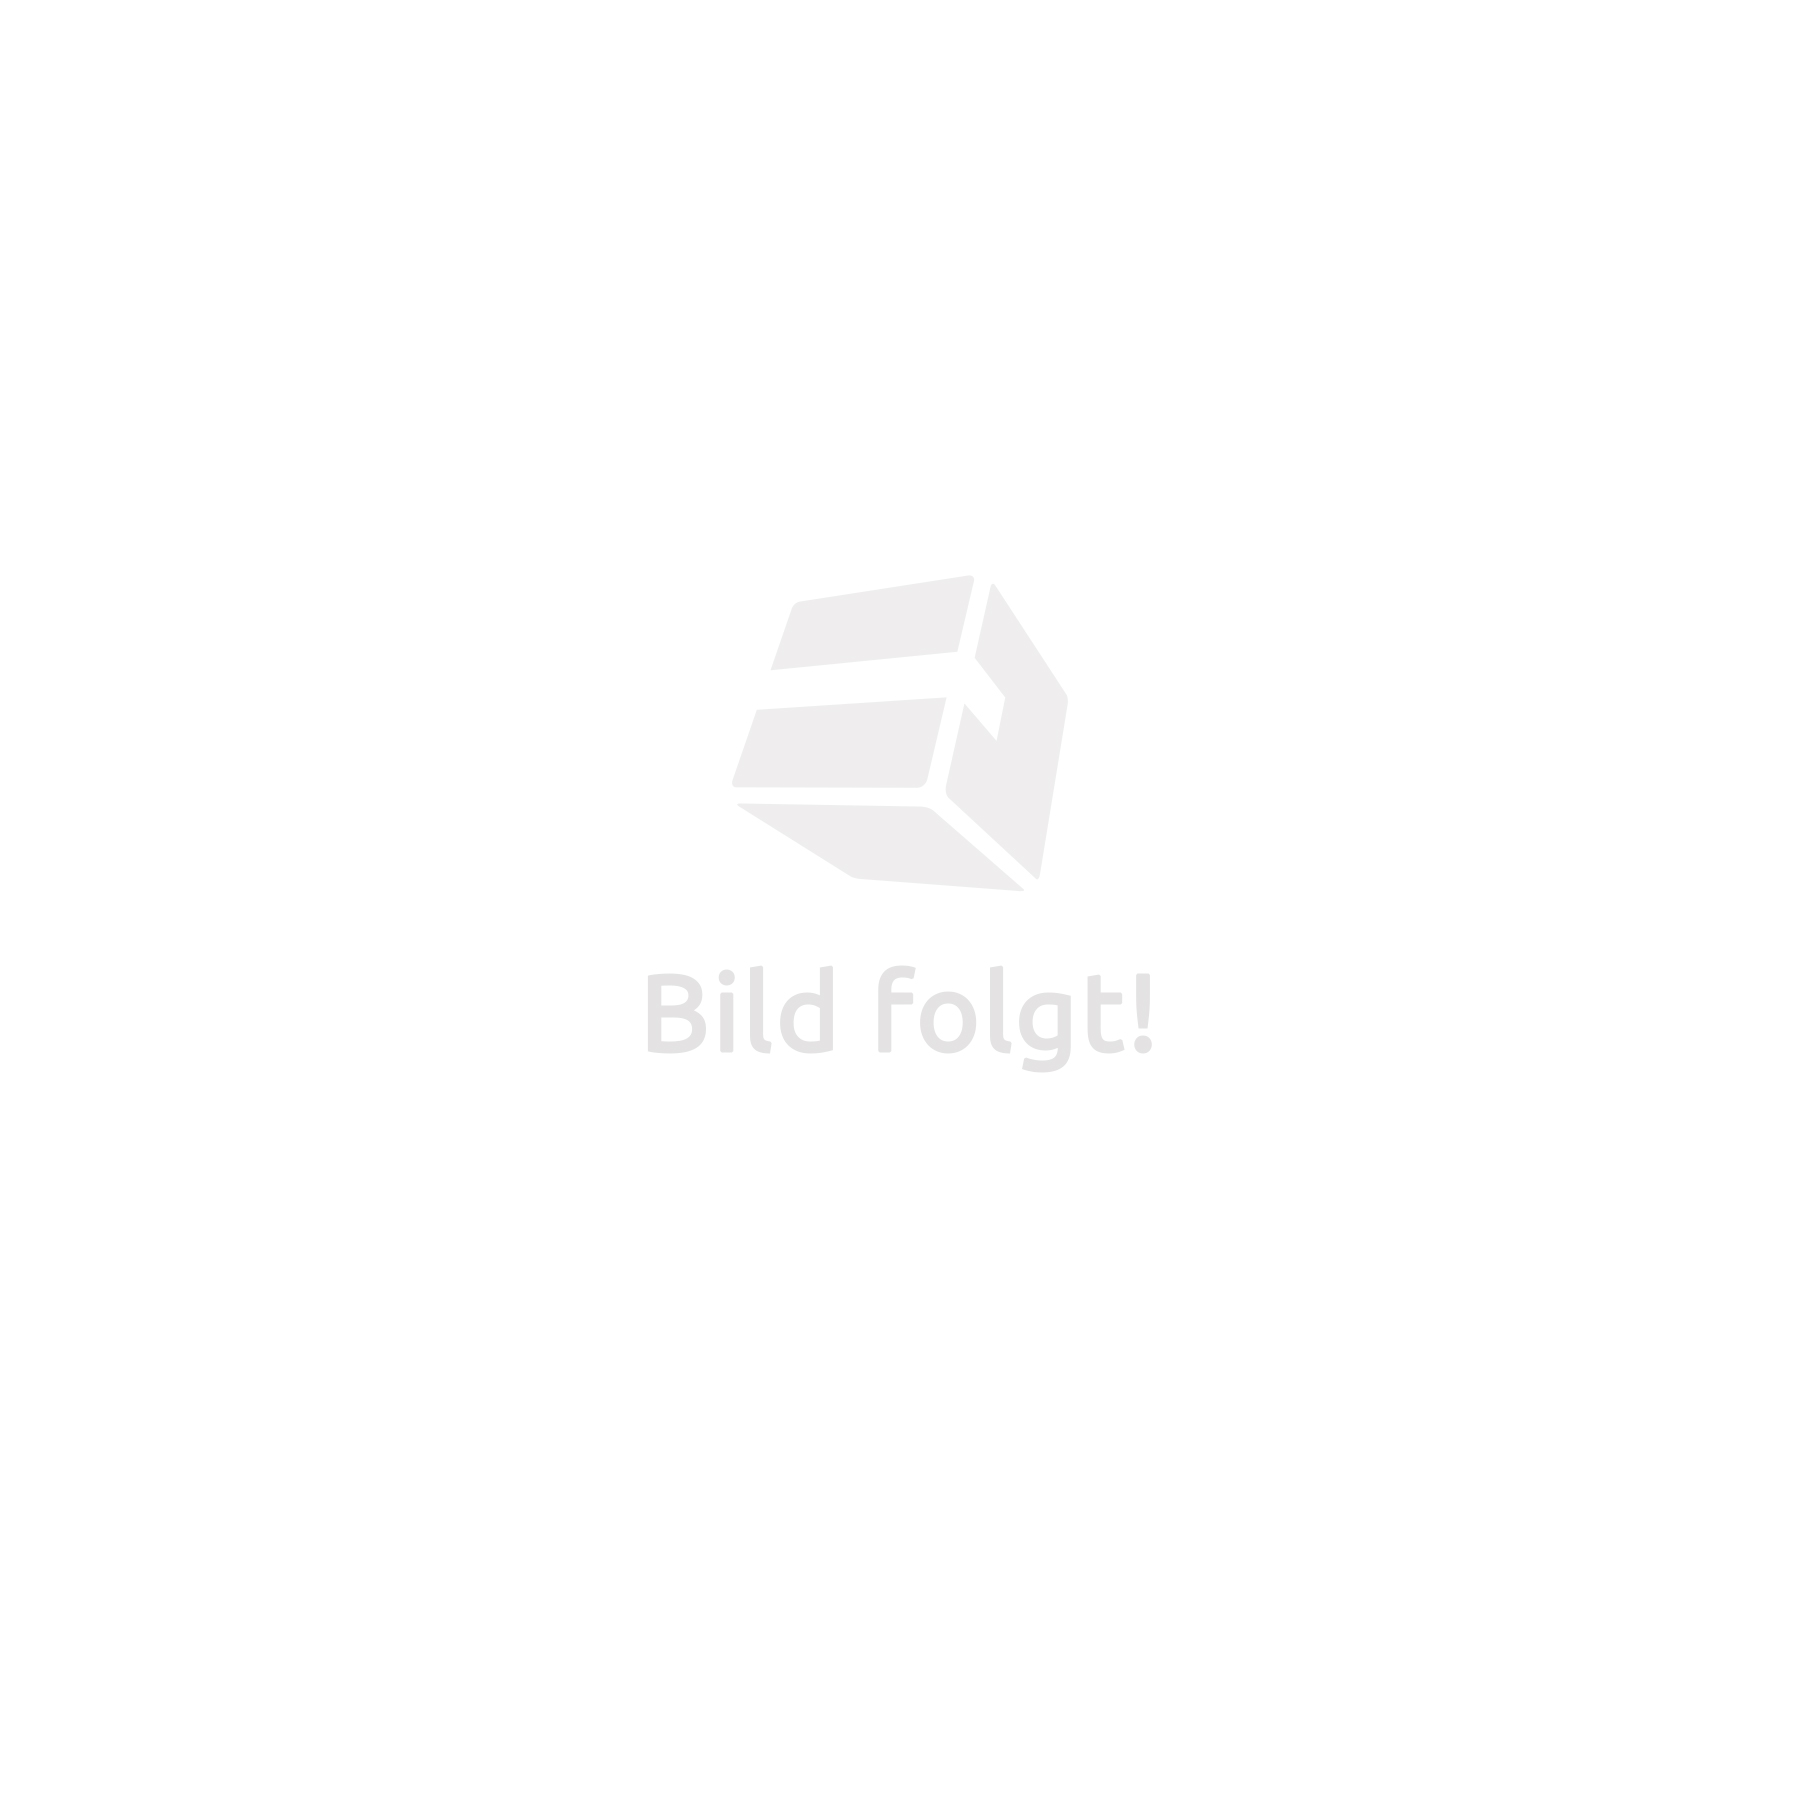 Greenhouse aluminium polycarbonate without foundation 190 x 185 x 195 cm